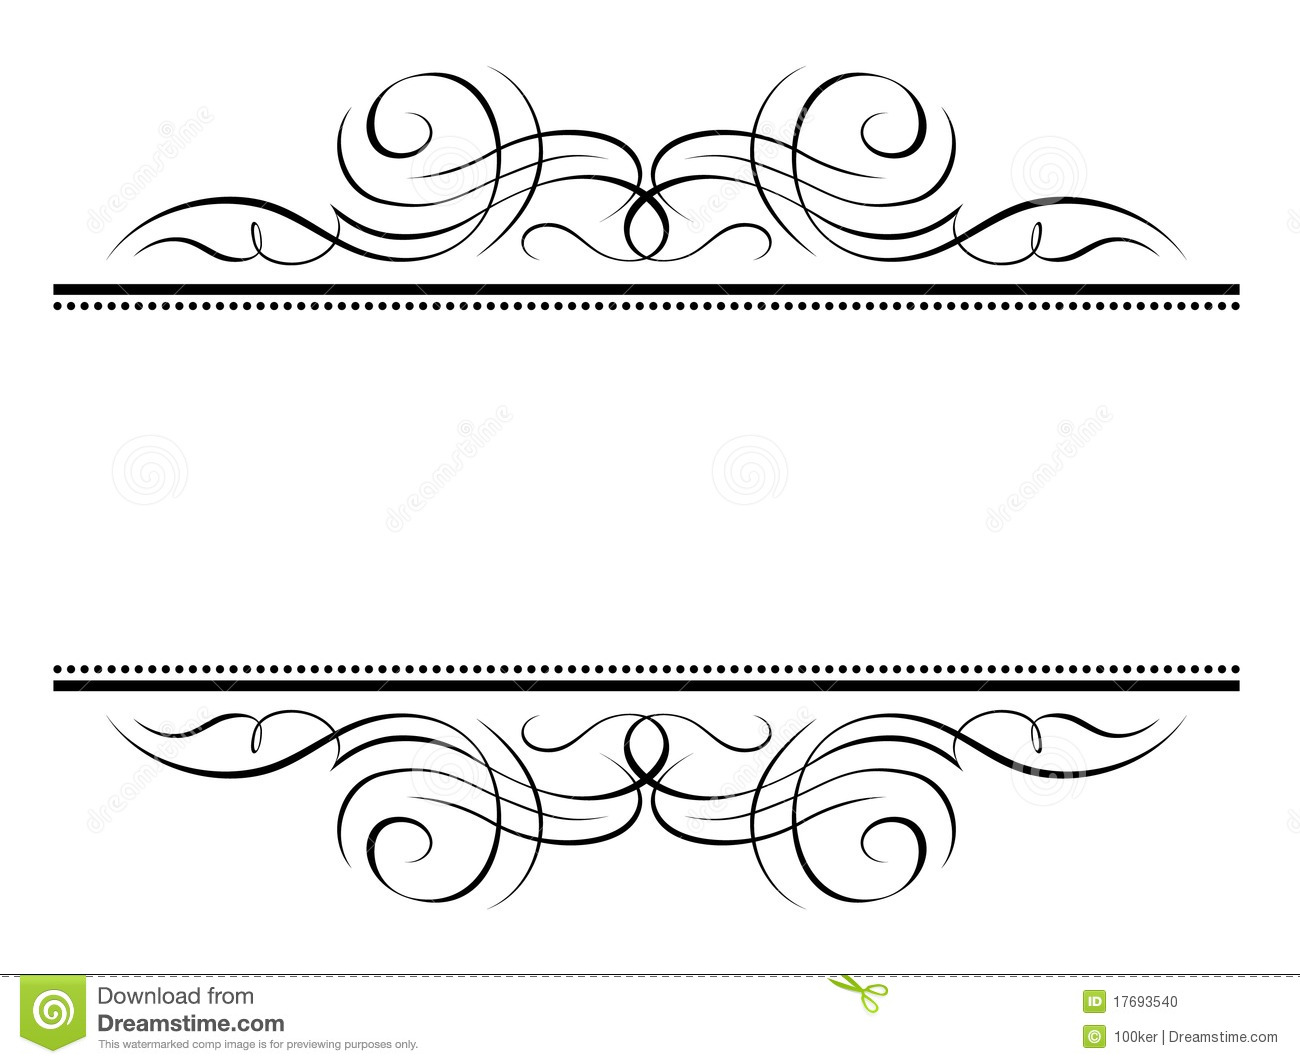 Calligraphy swirls clipart suggest